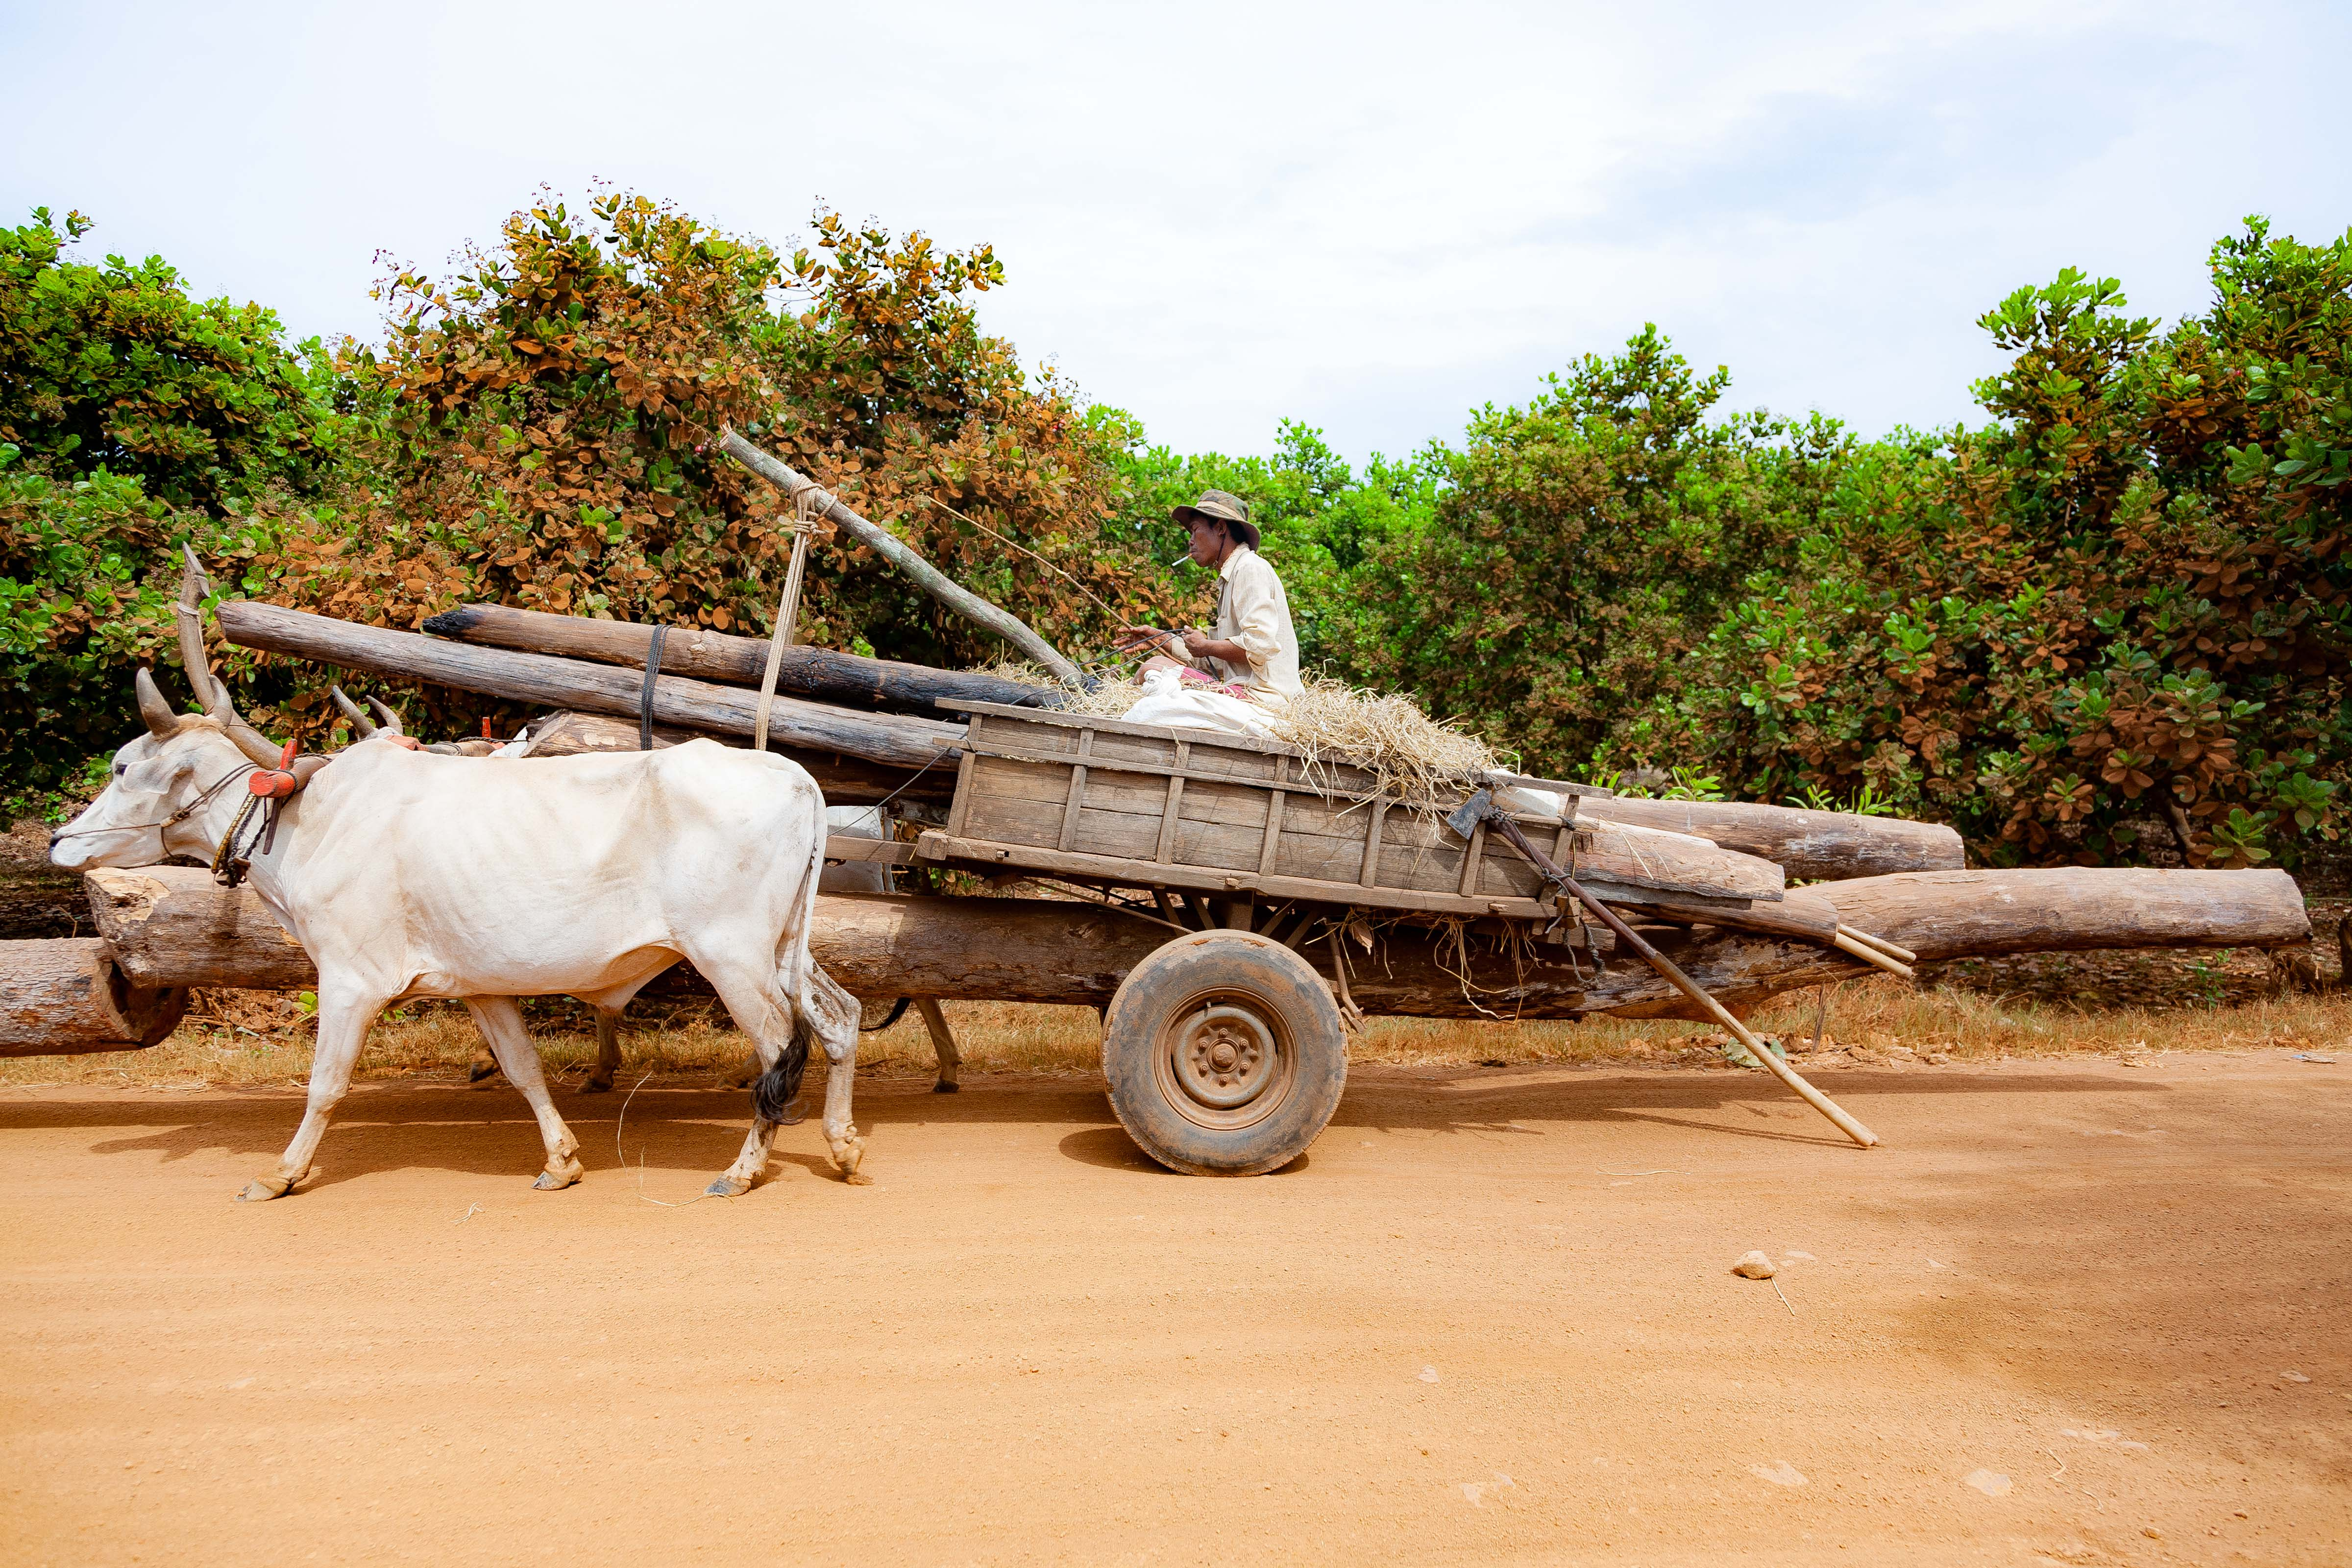 Cambodia, Kampong Chaam Prov, Cow Drawn Logging Cart, 2010, IMG 5432